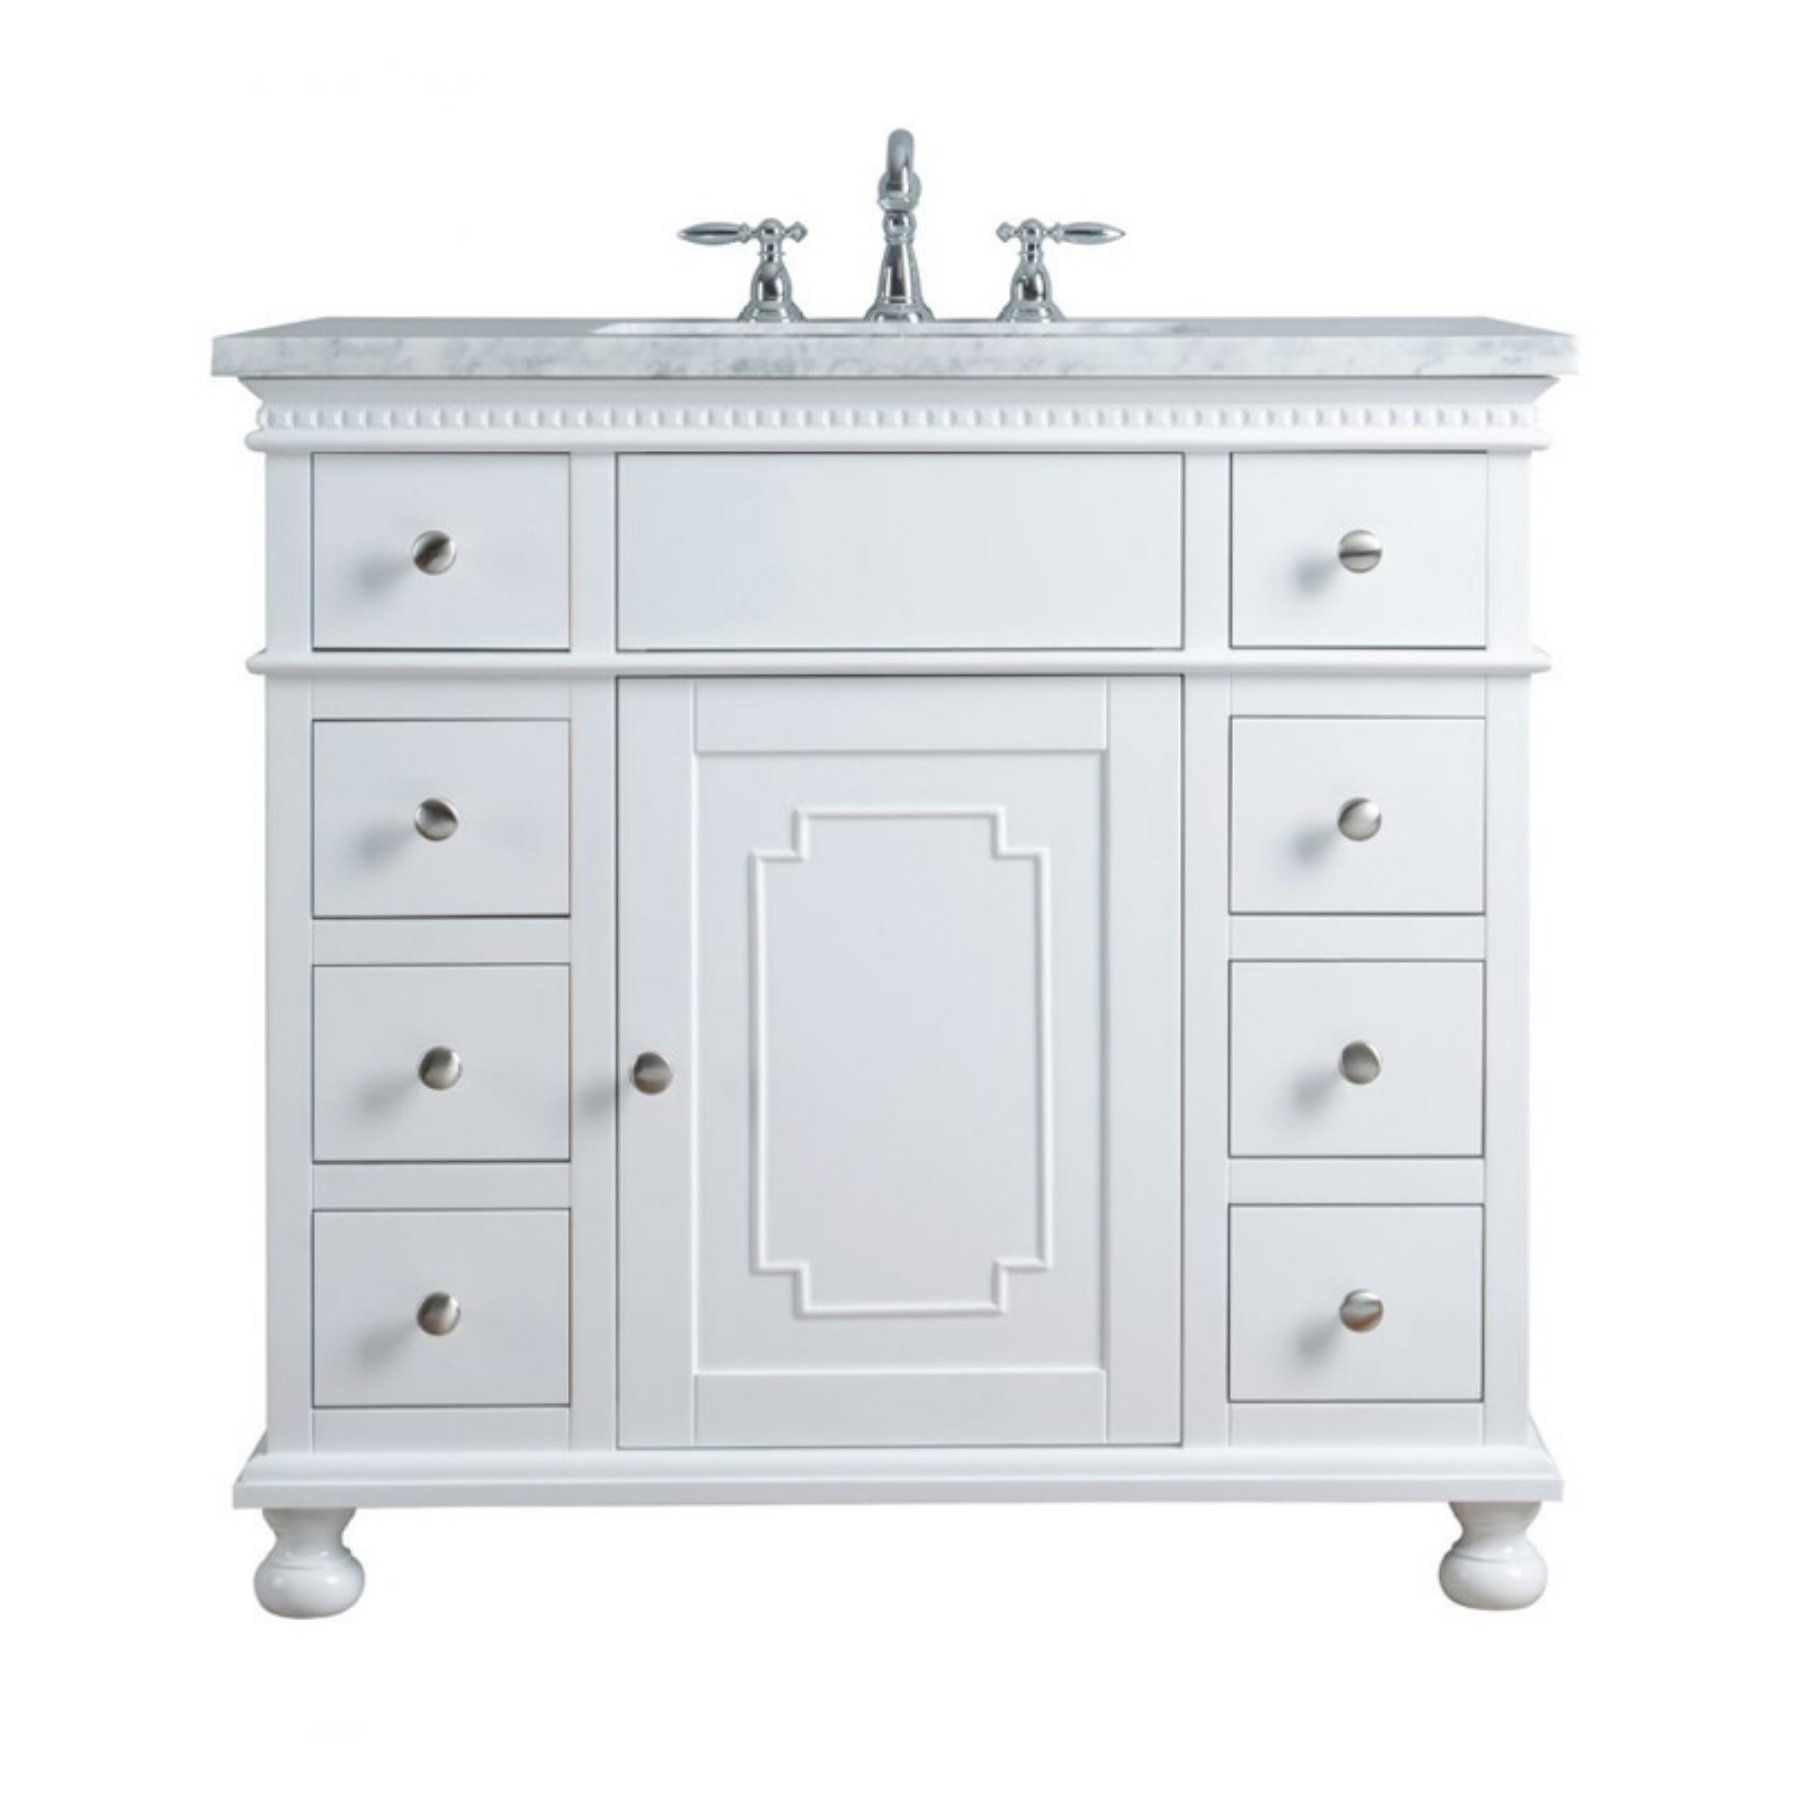 Embellished Single Sink Bathroom Vanity  97F54Da108Cf4D2Db031E60De78777Fd